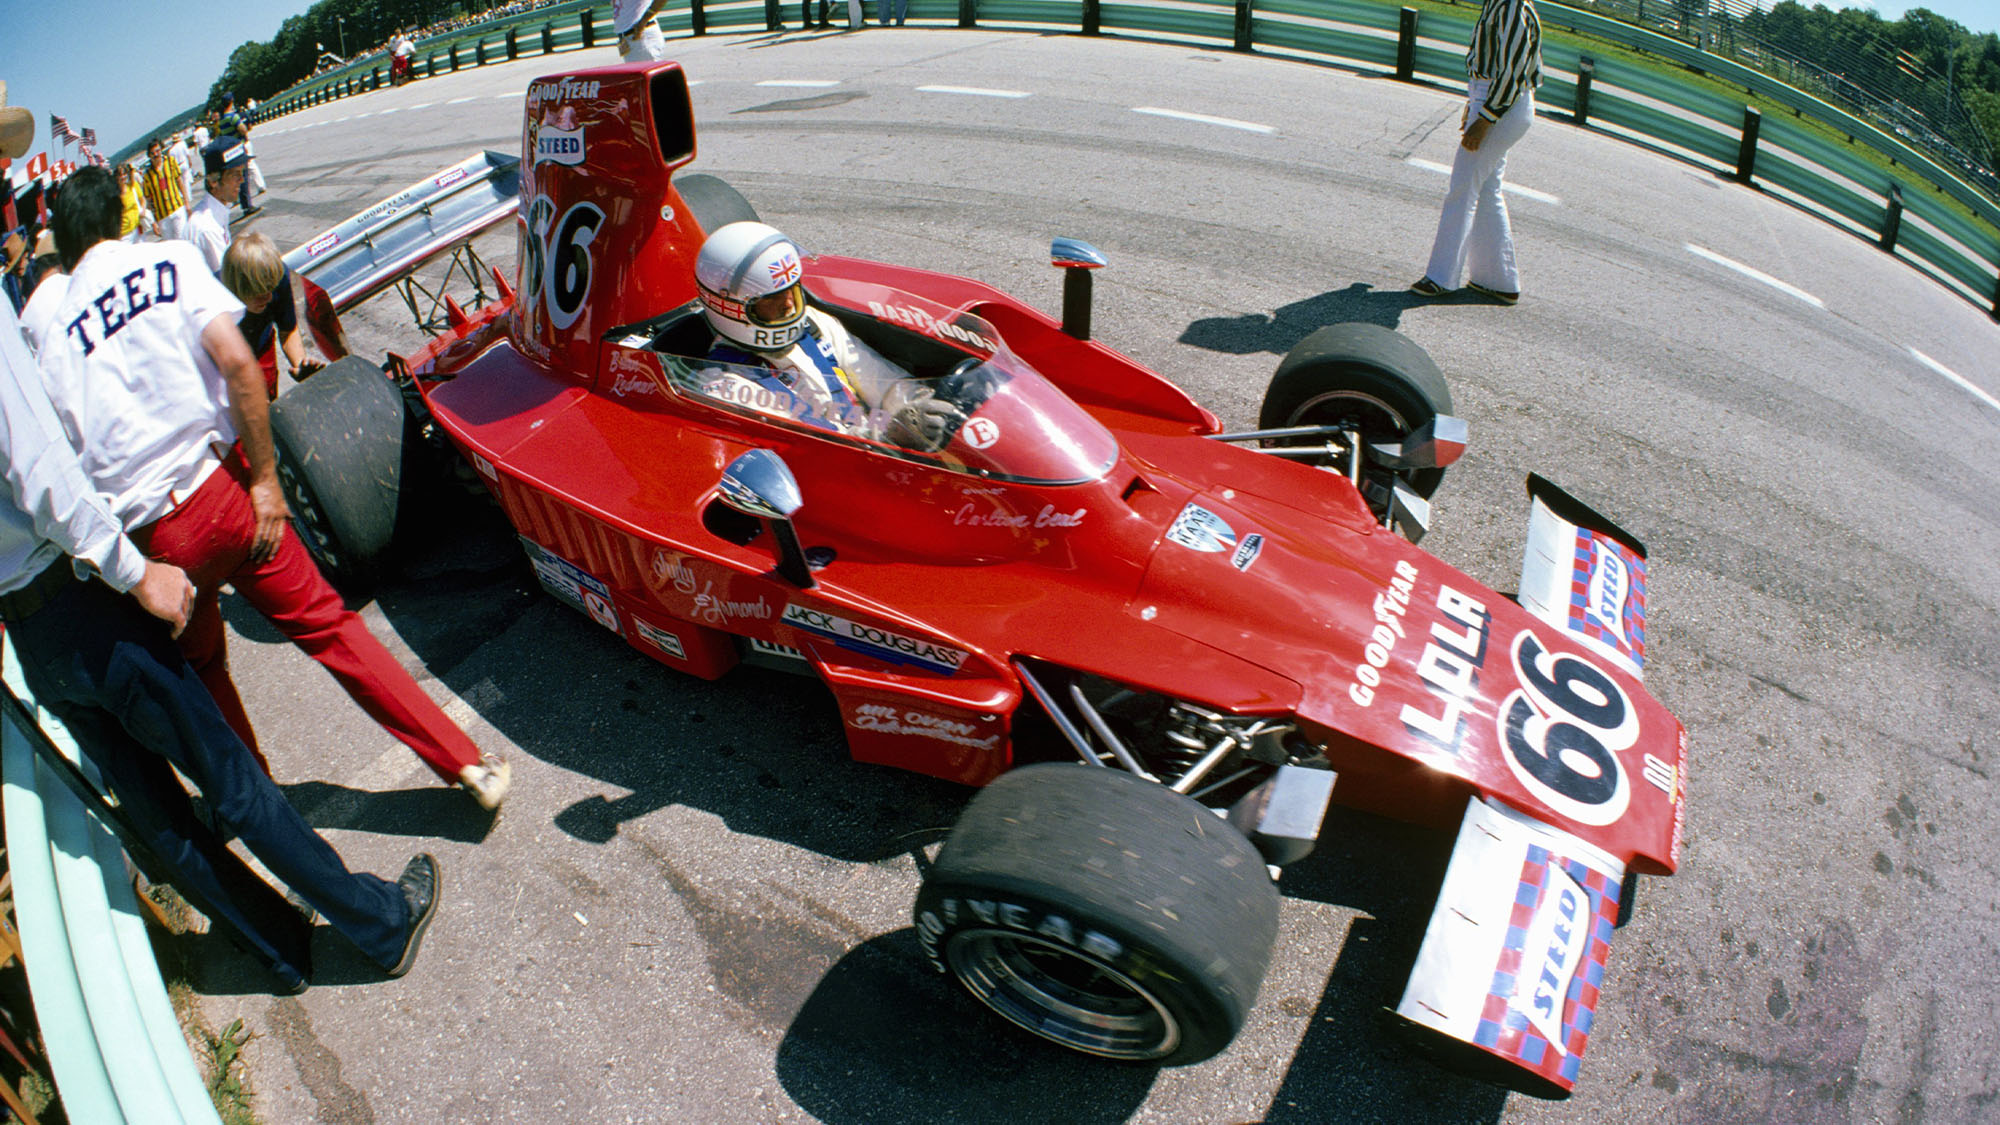 ELKHART LAKE, WI - JULY 28: Brian Redman sits in his Steed Lola T332 about to qualify for the SCCA/USAC F5000 race on July 28, 1974 at Elkhart Lake, Wisconsin. (Photo by Alvis Upitis/Getty Images)